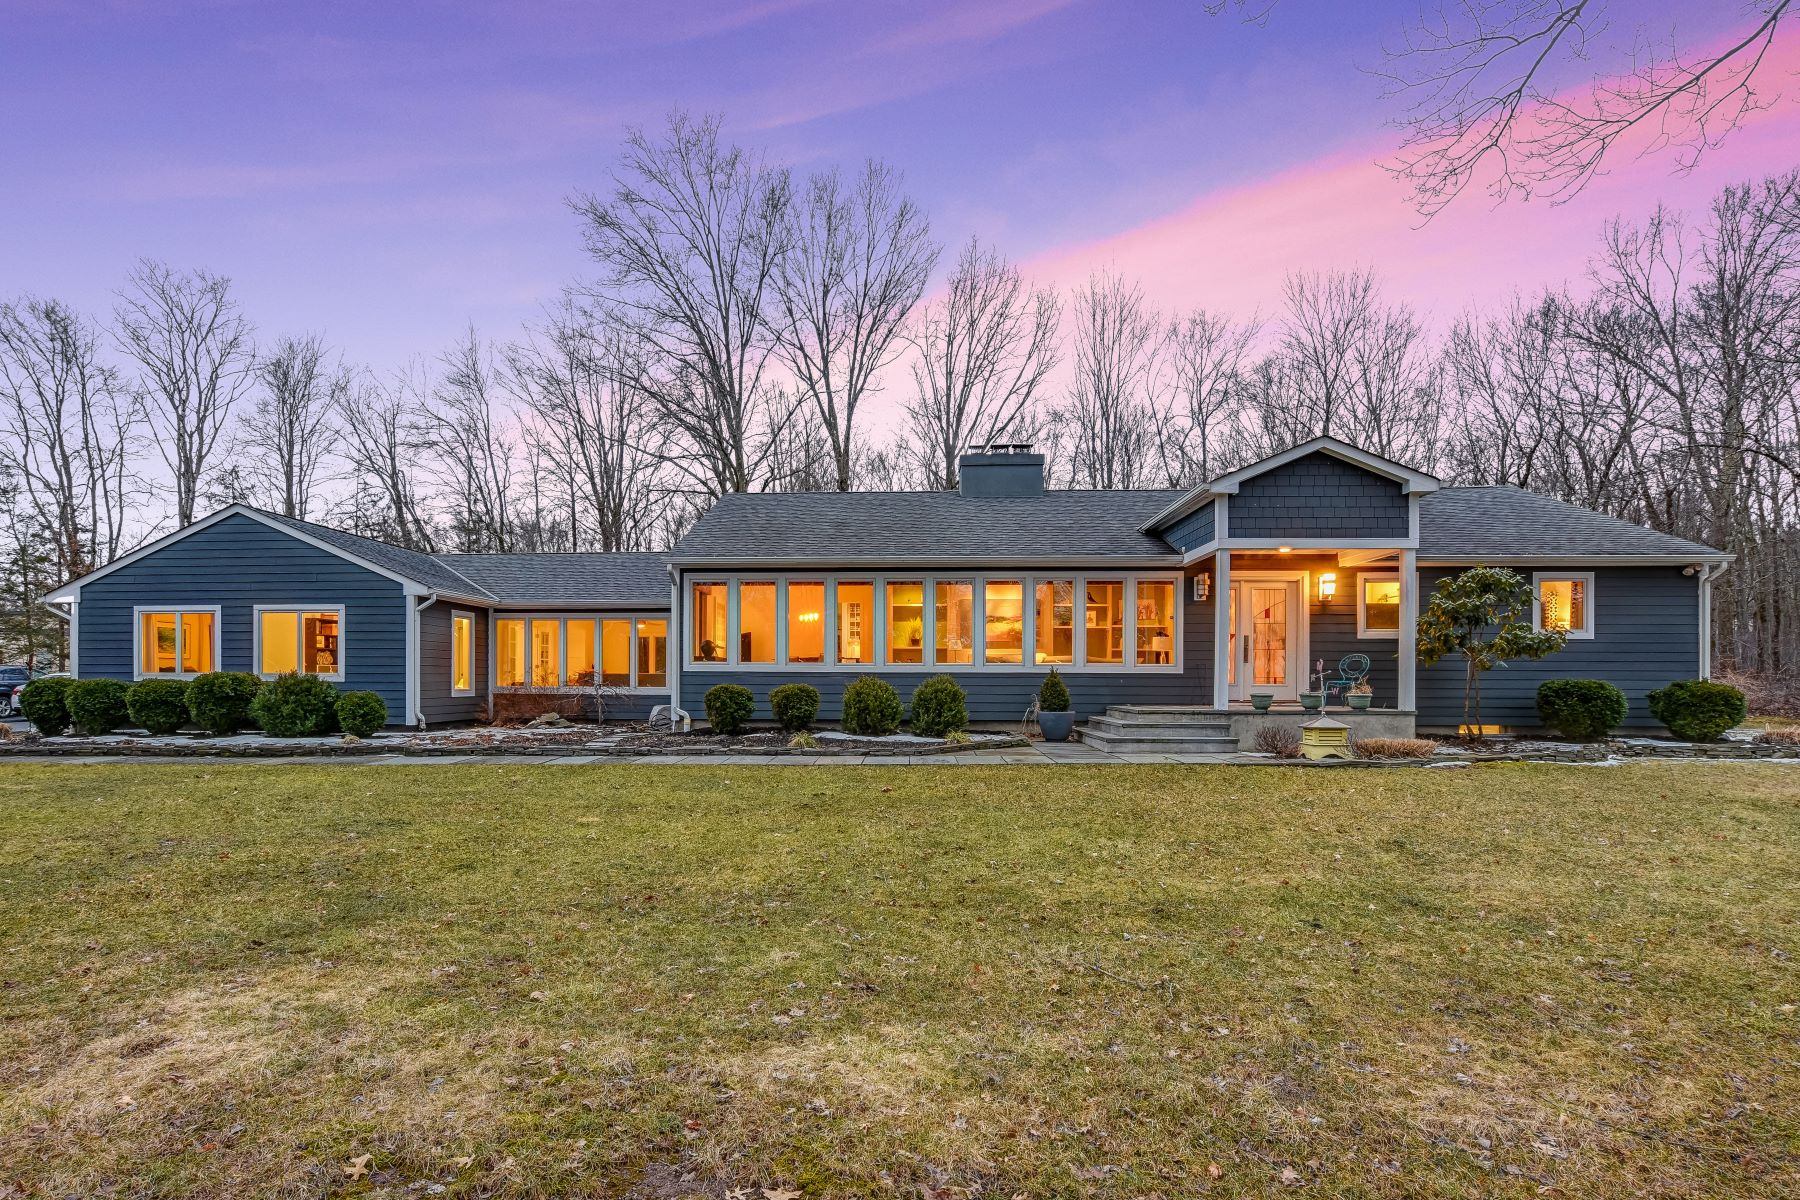 Single Family Homes for Sale at Stunning Ranch 7 Yardley Road Mendham, New Jersey 07945 United States